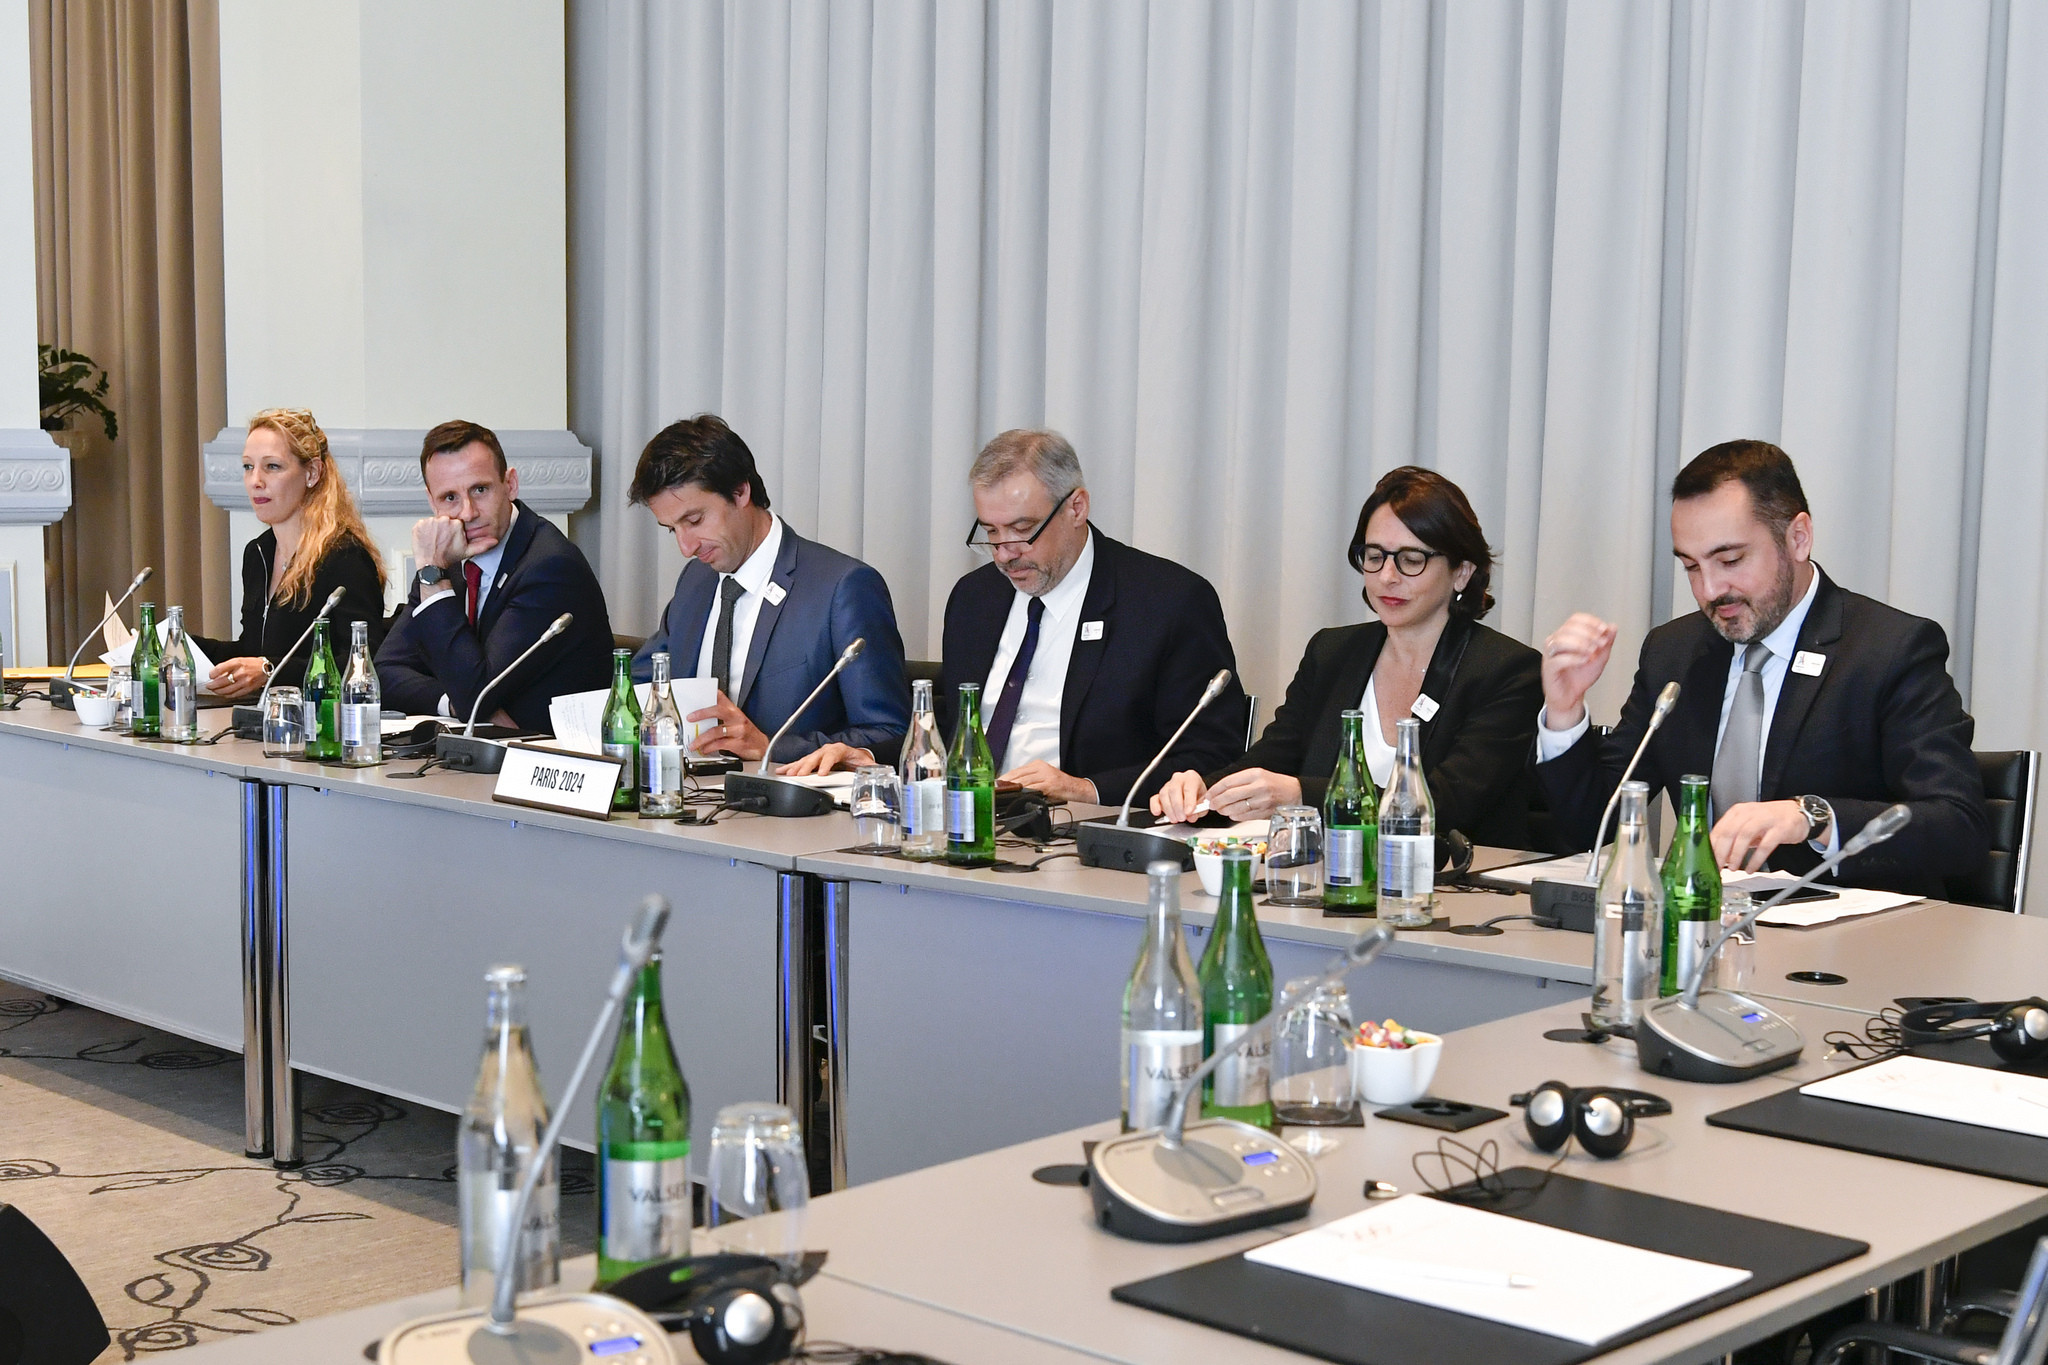 Paris 2024 presented their proposals to the IOC Executive Board today ©IOC